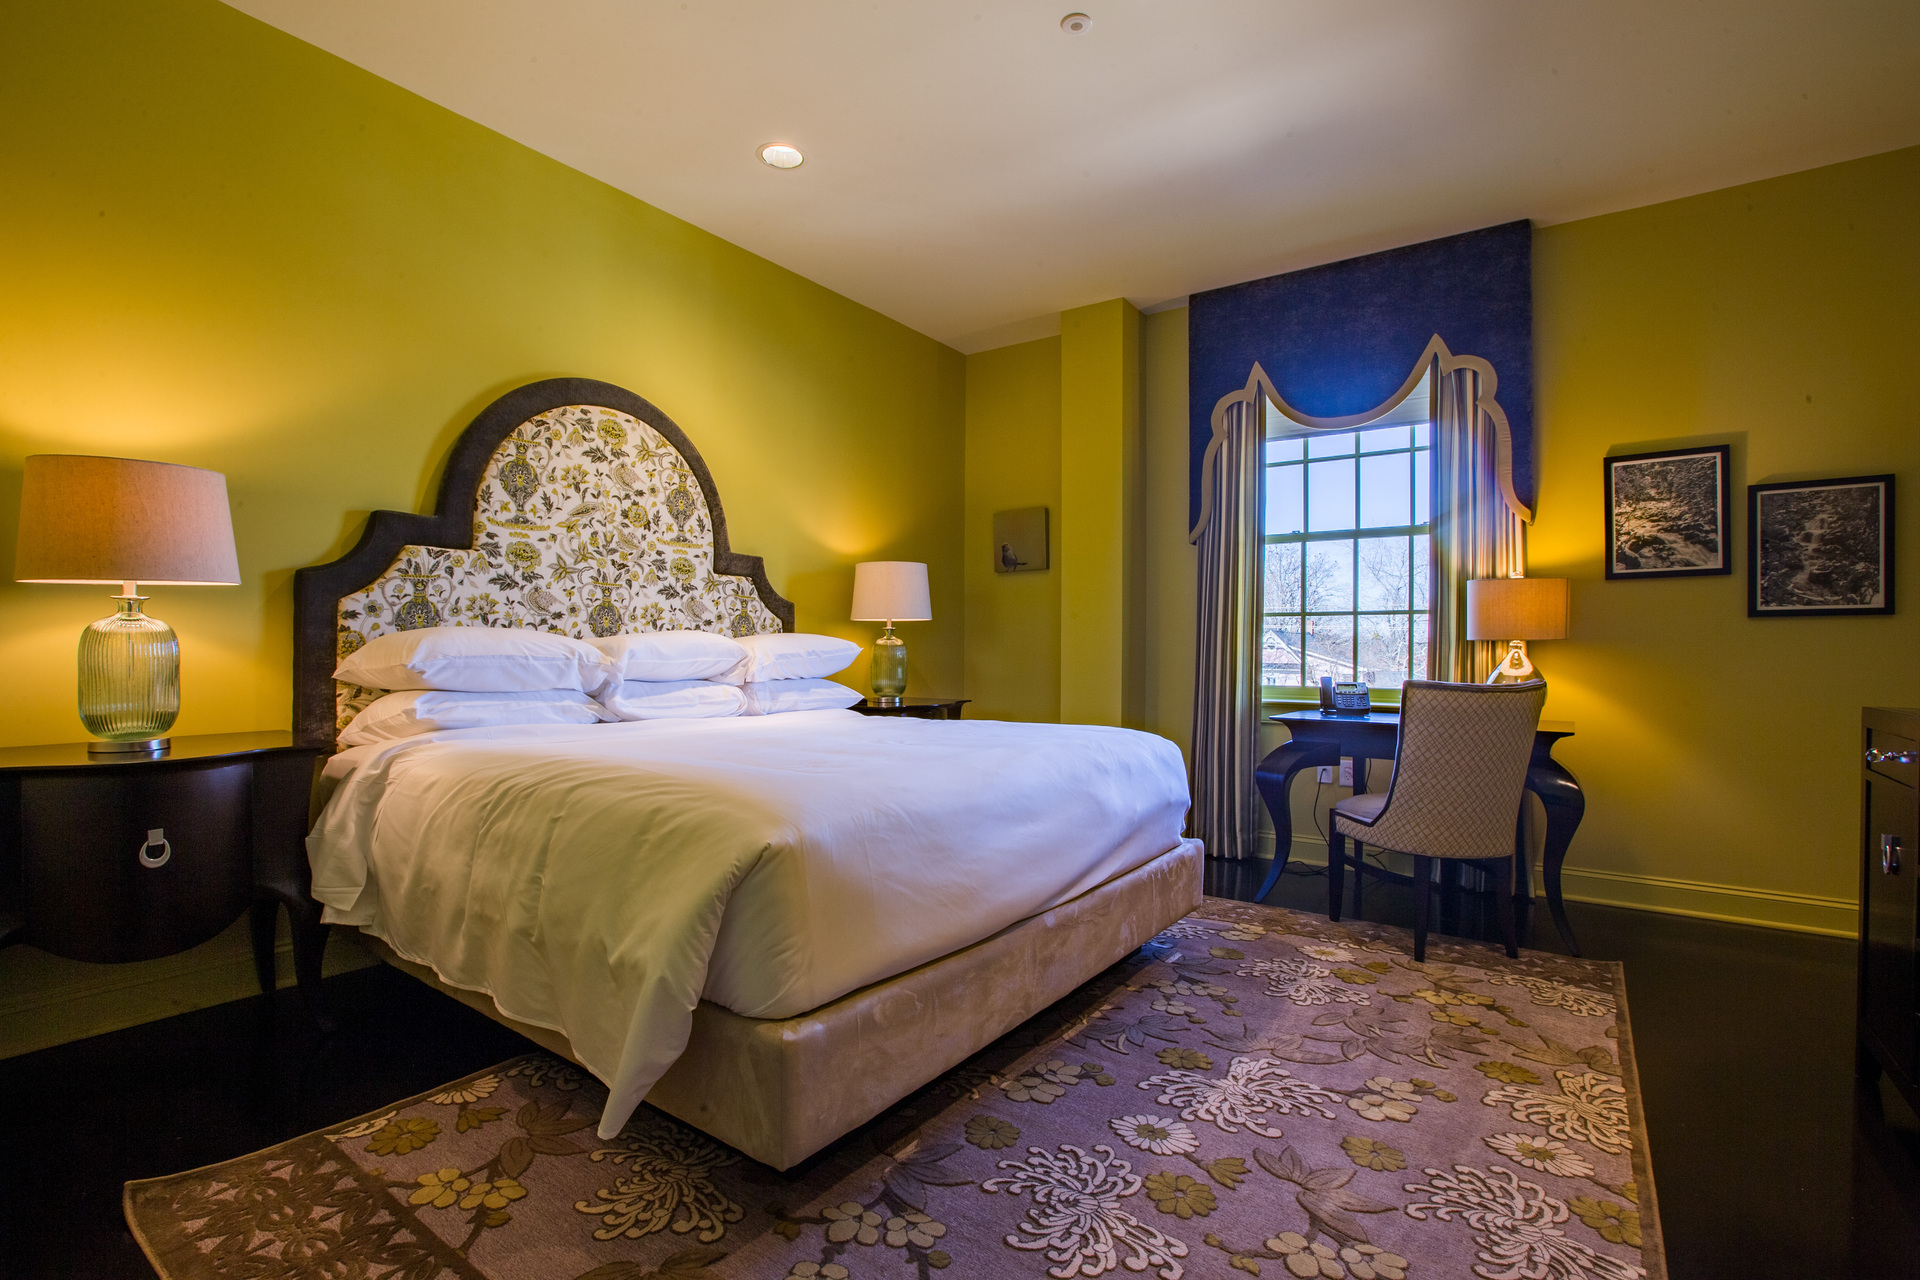 Come and enjoy your getaway at this bed and breakfast.    No need to be worried about hearing other hotel guests through the walls.  All the walls have a sound-reducing drywall by QuietRock to create a wonderful guest experience.